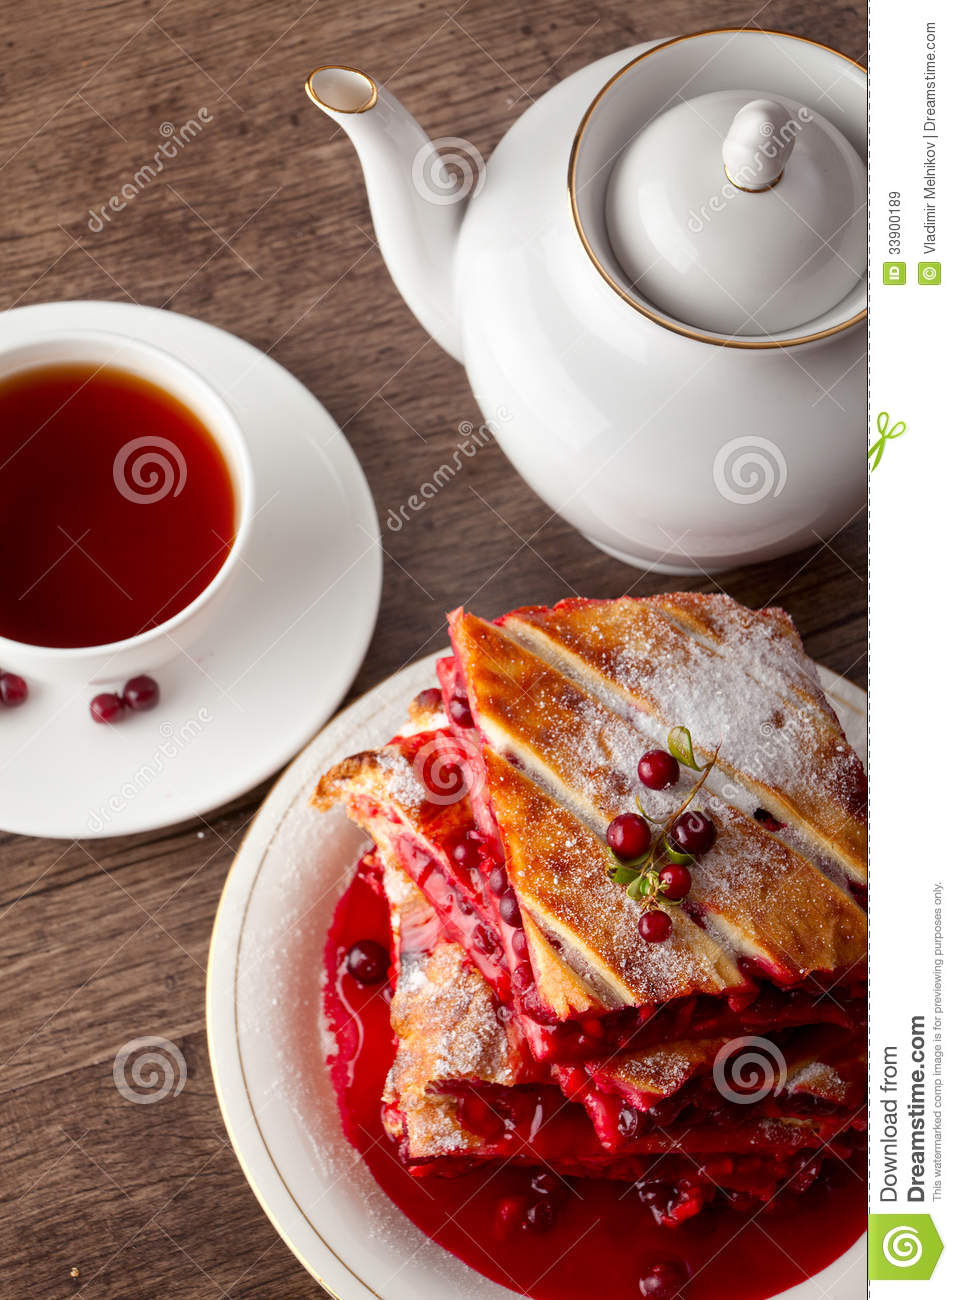 Cranberry Cake Royalty Free Stock Images - Image: 33900189